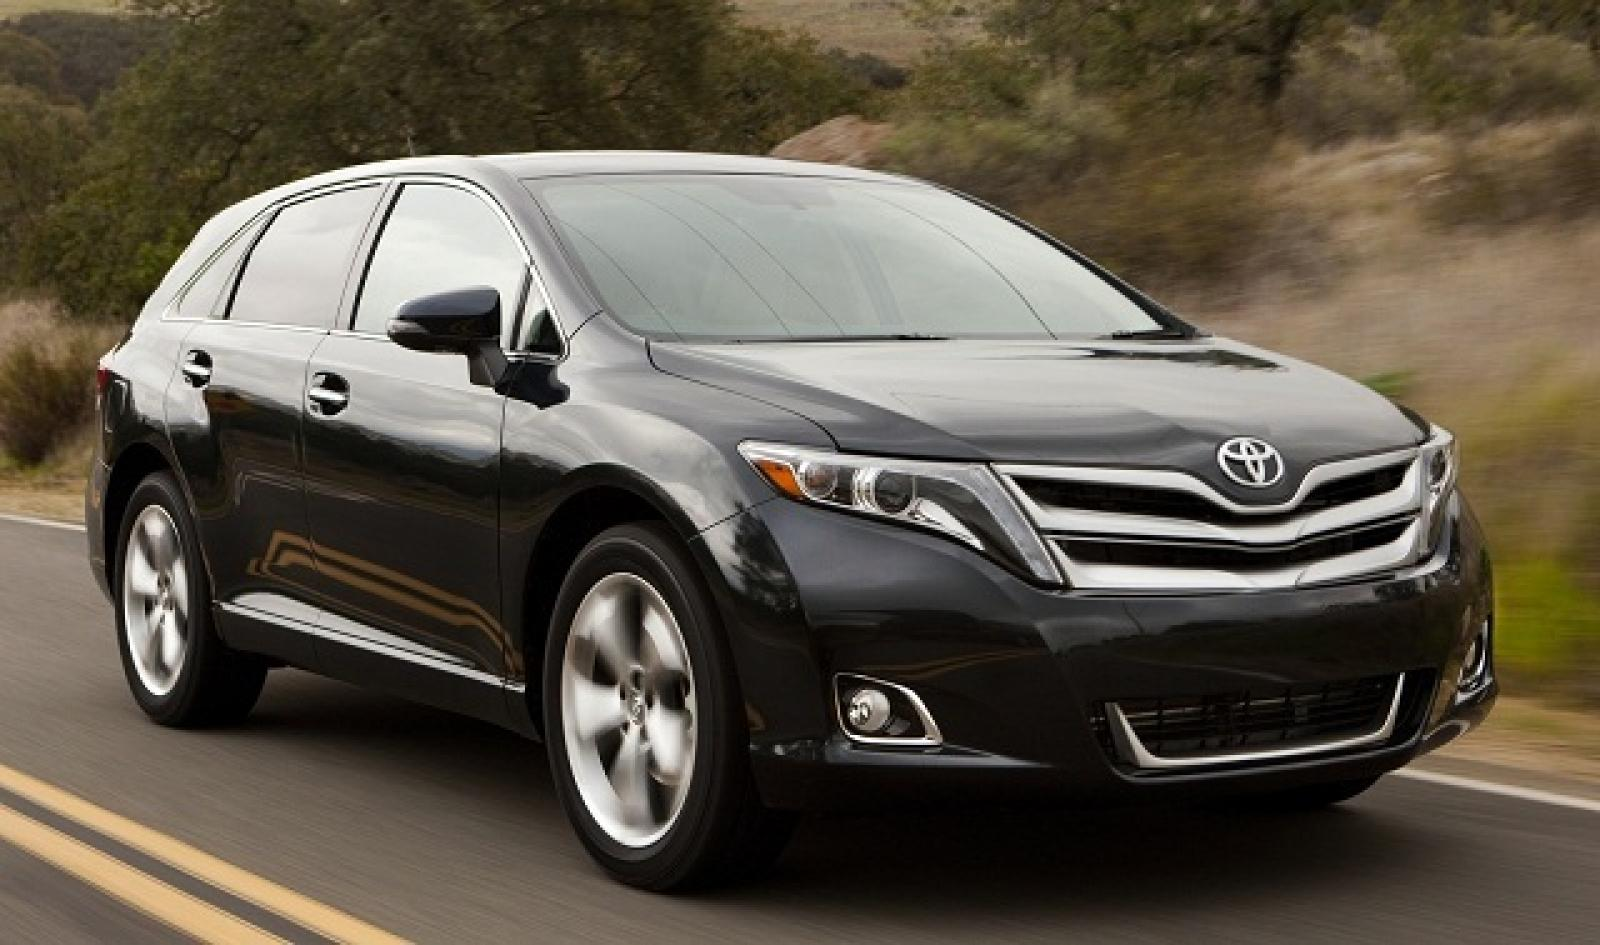 2015 toyota venza information and photos zombiedrive. Black Bedroom Furniture Sets. Home Design Ideas